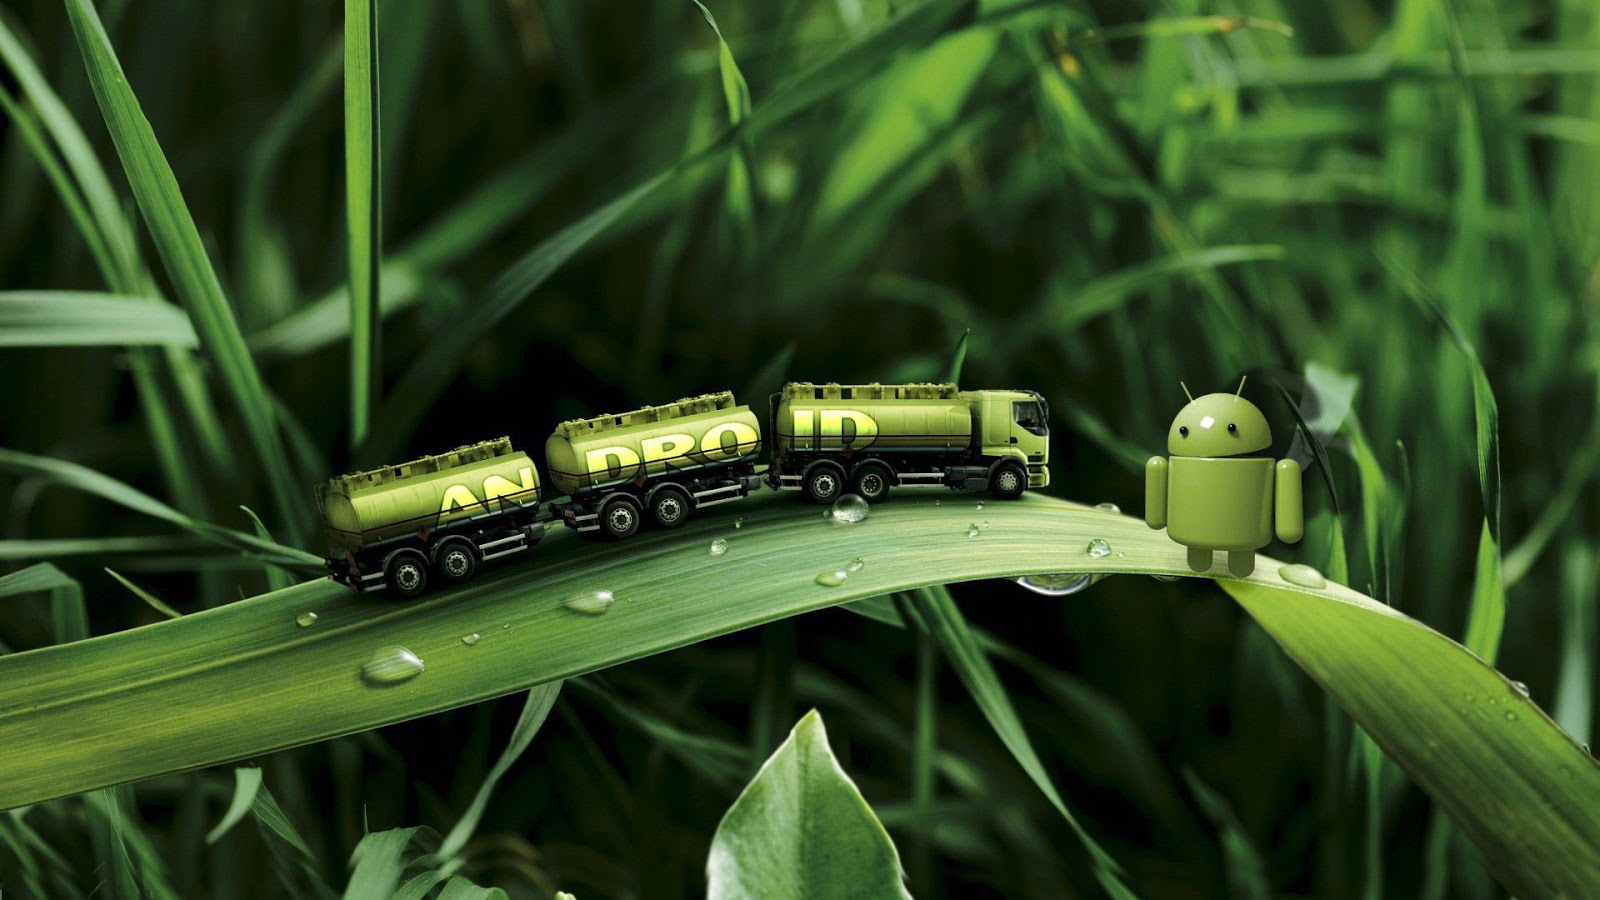 Android Truck on Green Leaves HD Wallpaper